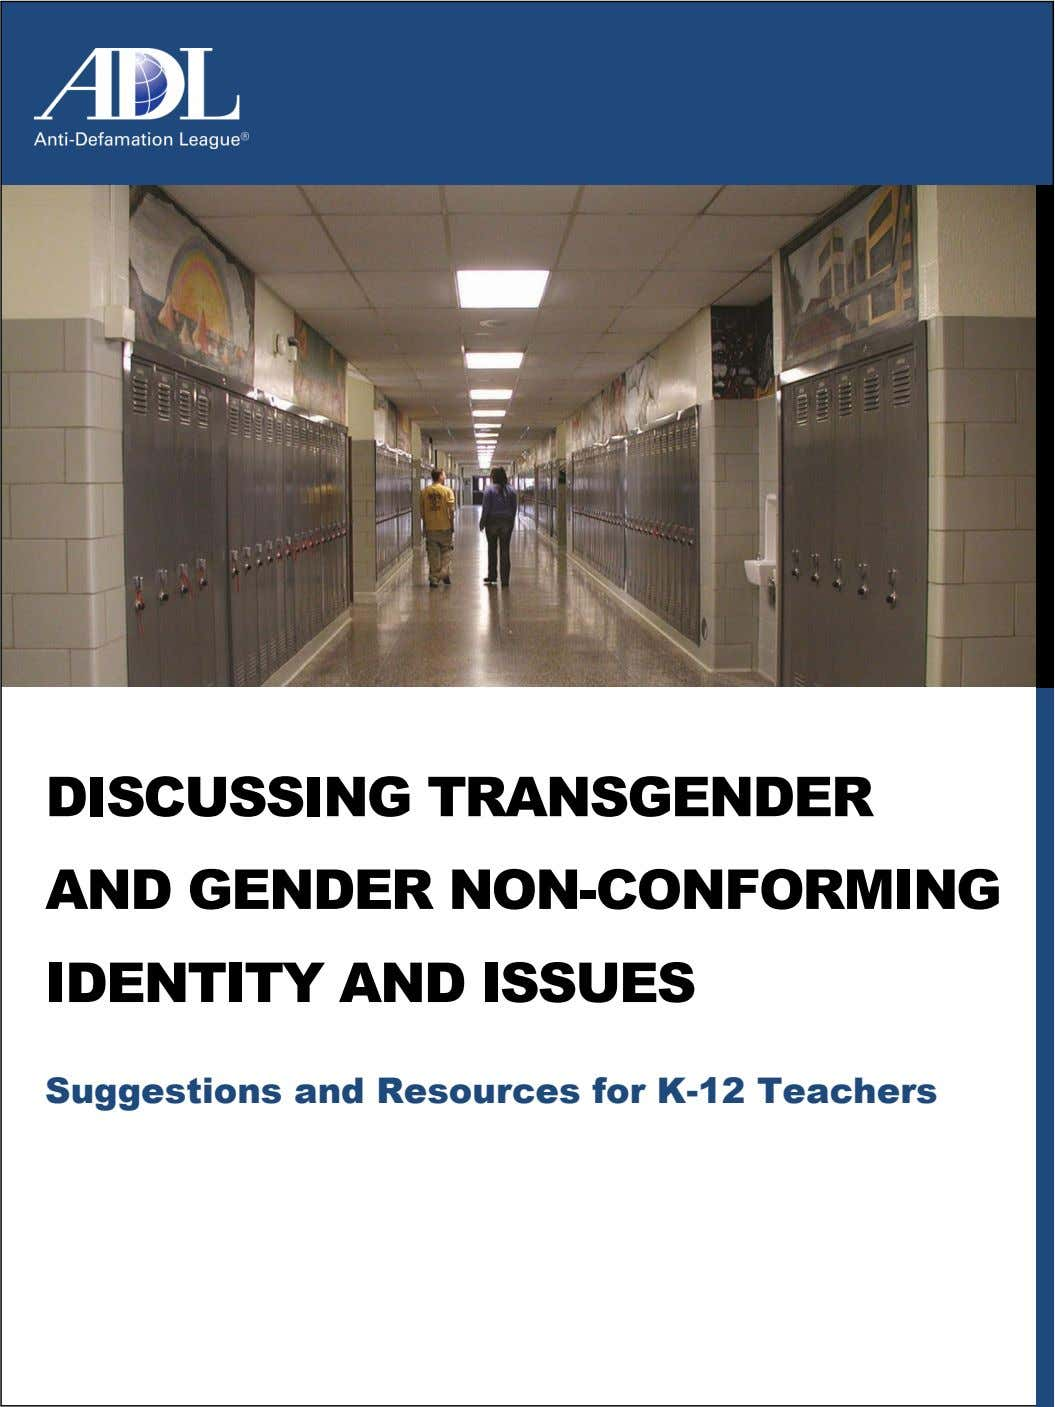 DISCUSSING TRANSGENDER AND GENDER NON-CONFORMING IDENTITY AND ISSUES Suggestions and Resources for K-12 Teachers